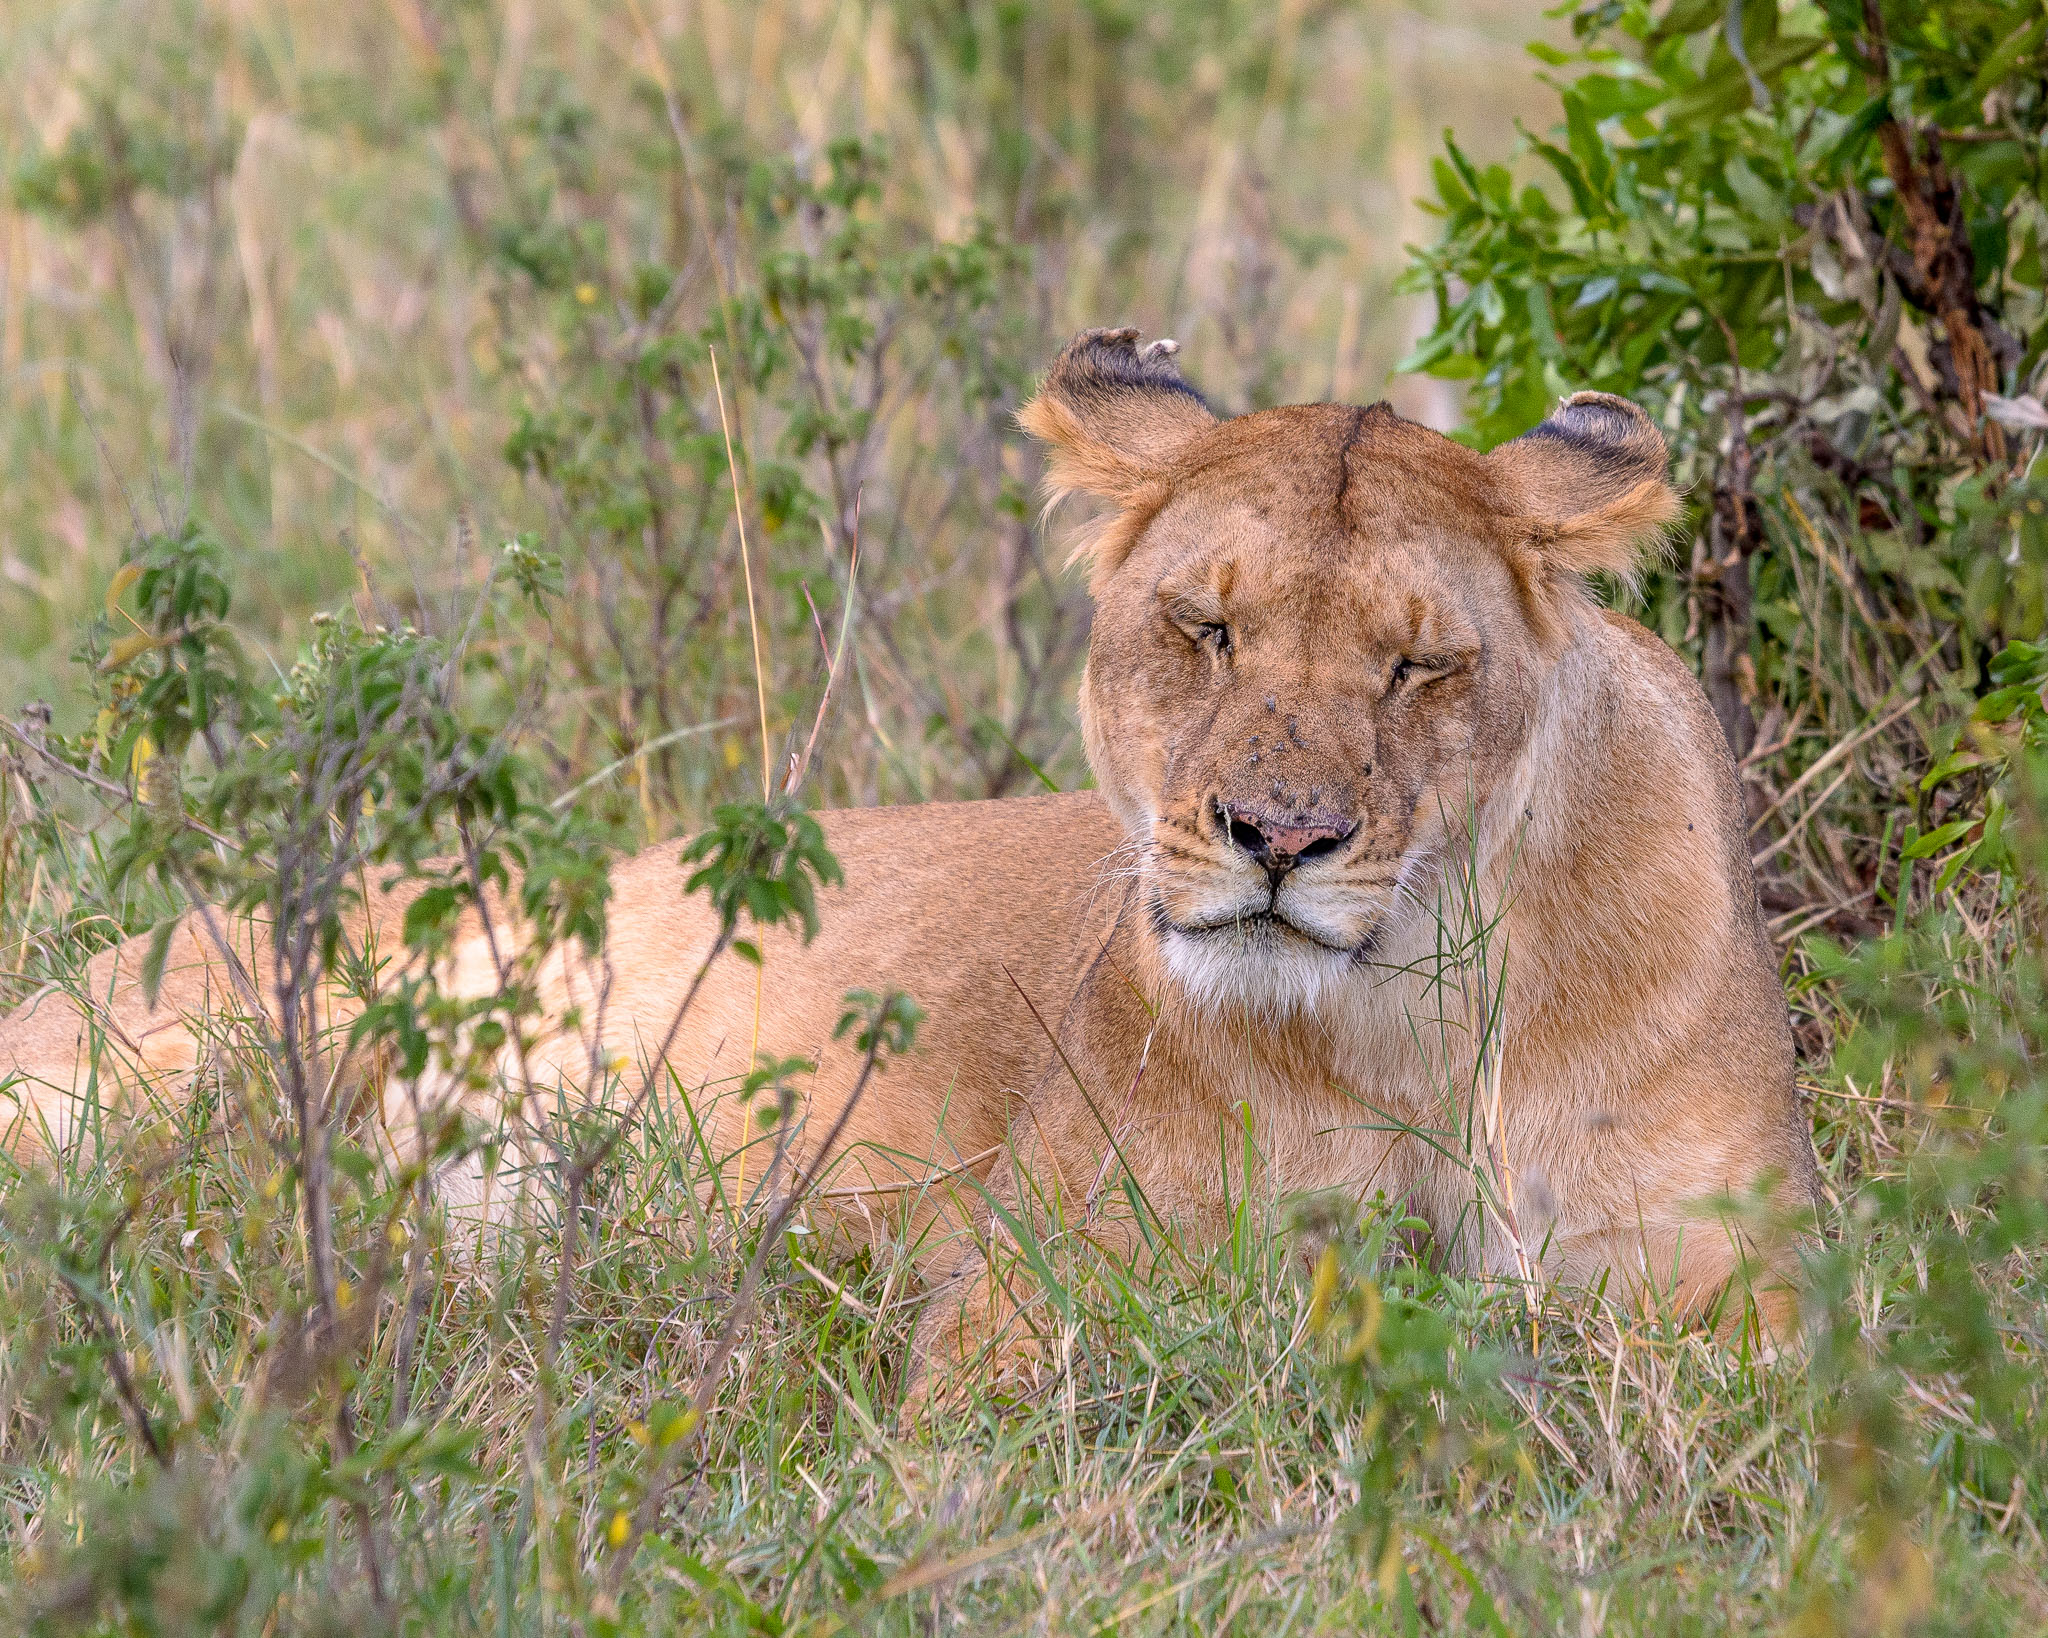 I was lucky to go straight out and find a lioness on my first game drive in the Masai Mara in Kenya. Well I thought I was lucky. Our guide explained afterwards that some animals are creatures of routine, and this lioness and her pride always took an afternoon siesta in similar places.